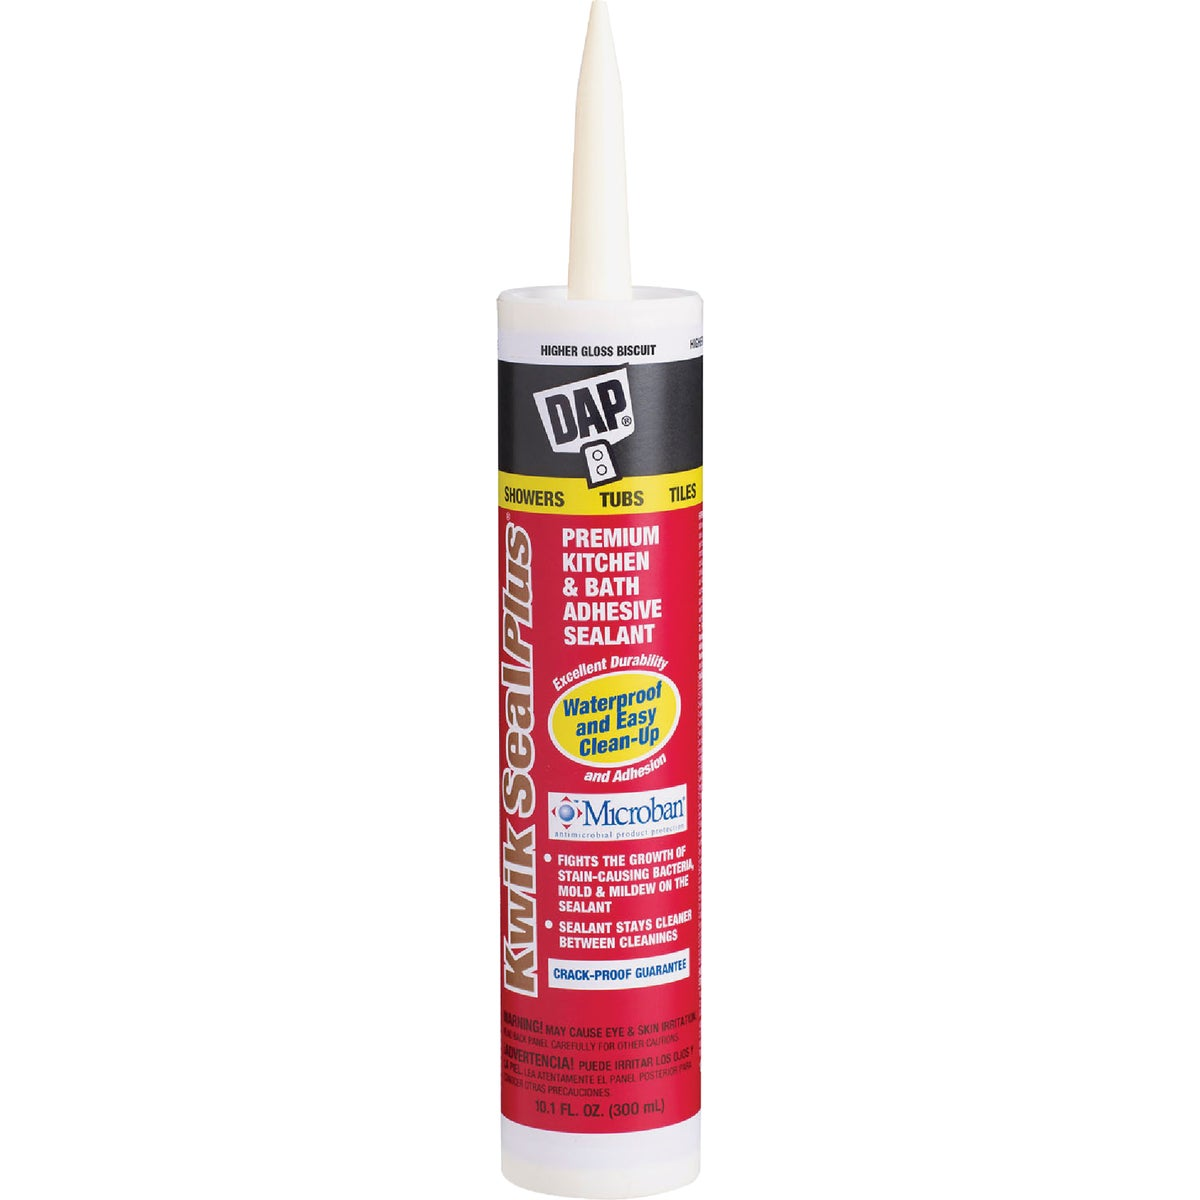 BISQ KWK-SEAL PLUS CAULK